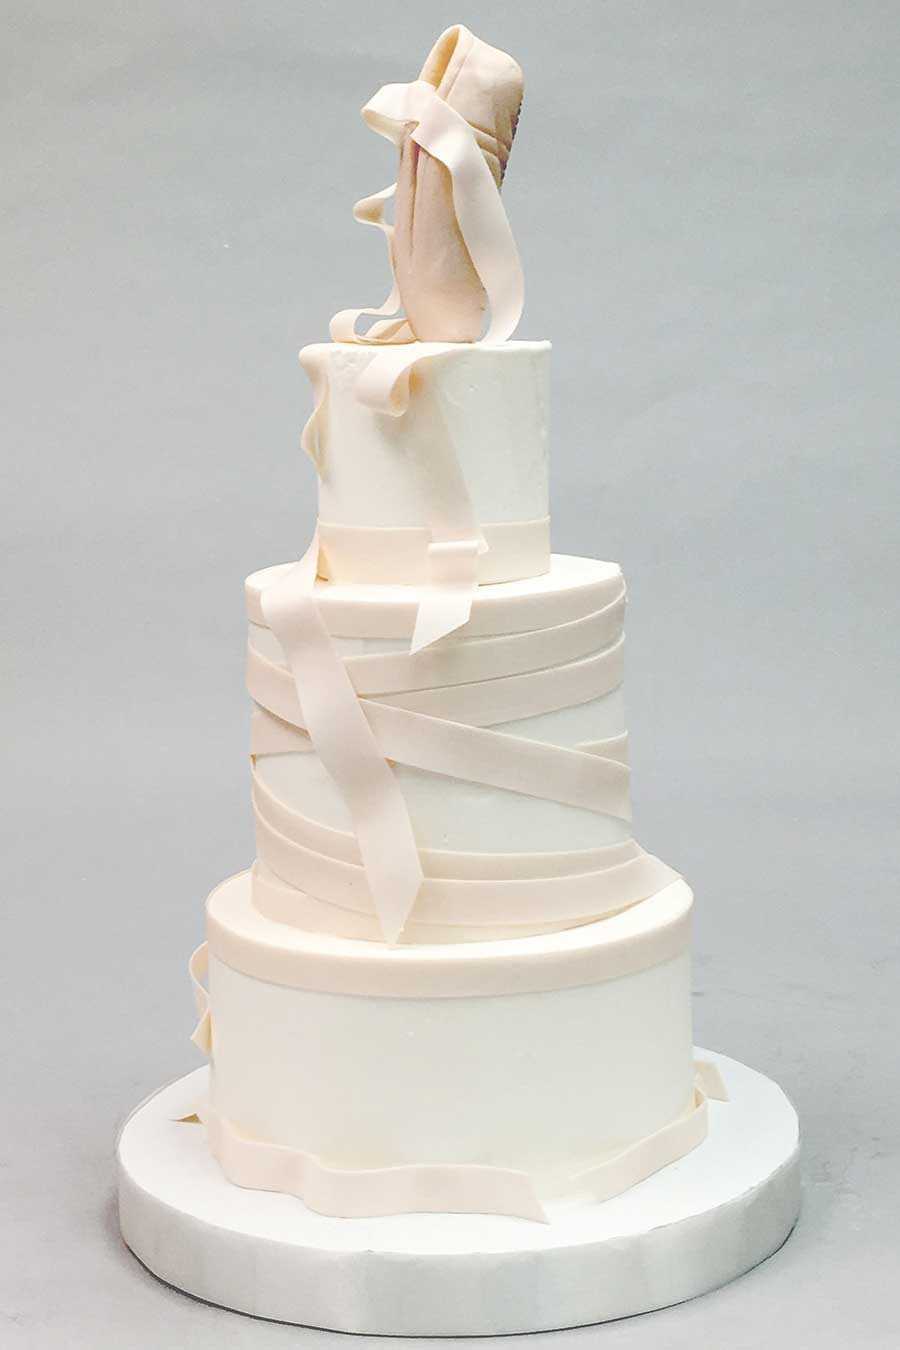 Party Cakes - Fancy Cakes by Lauren Kitchens